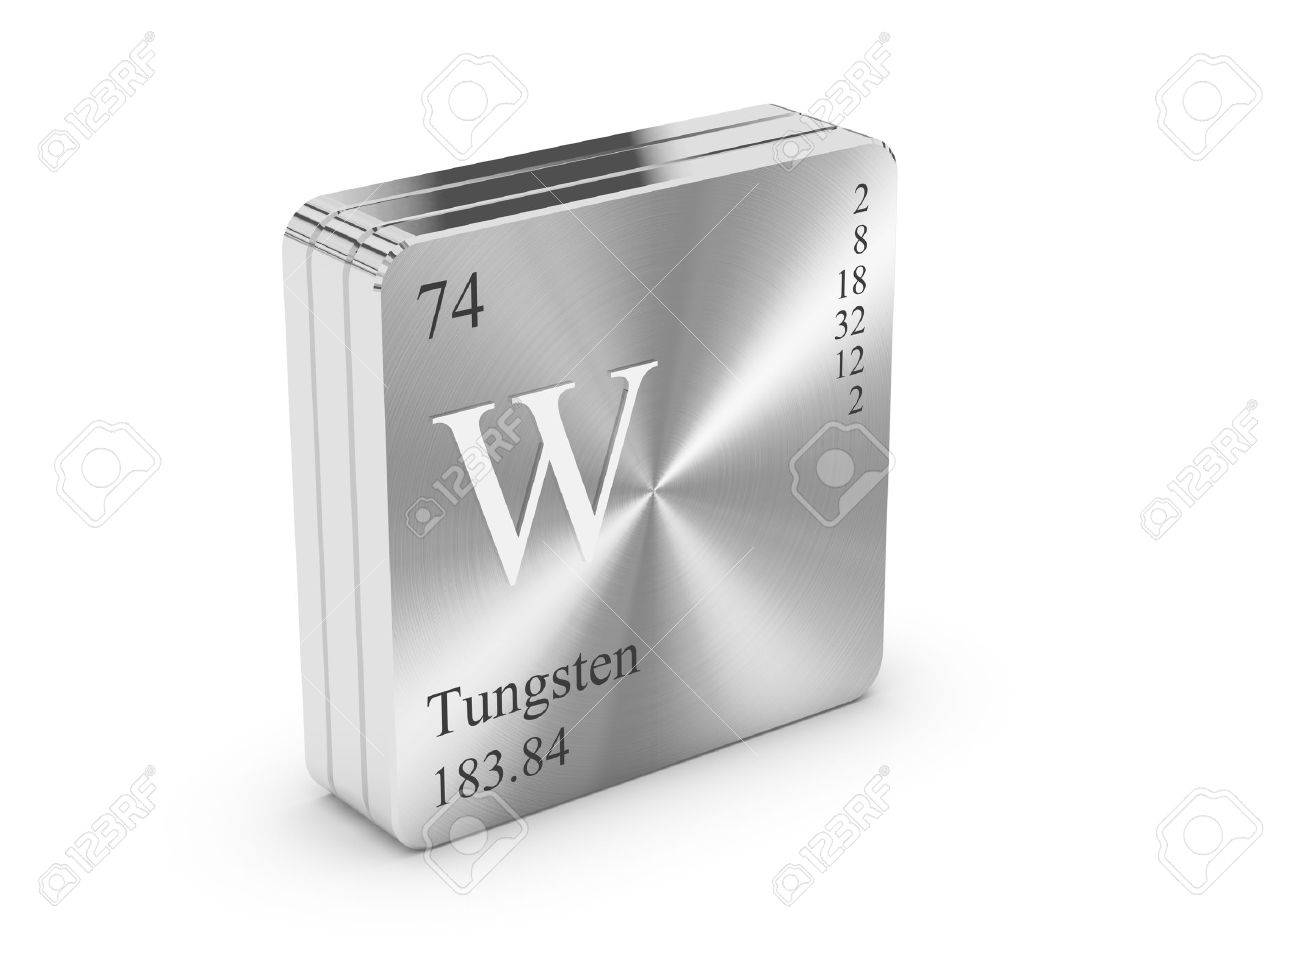 Tungsten element of the periodic table on metal steel block tungsten element of the periodic table on metal steel block stock photo 12150434 gamestrikefo Gallery